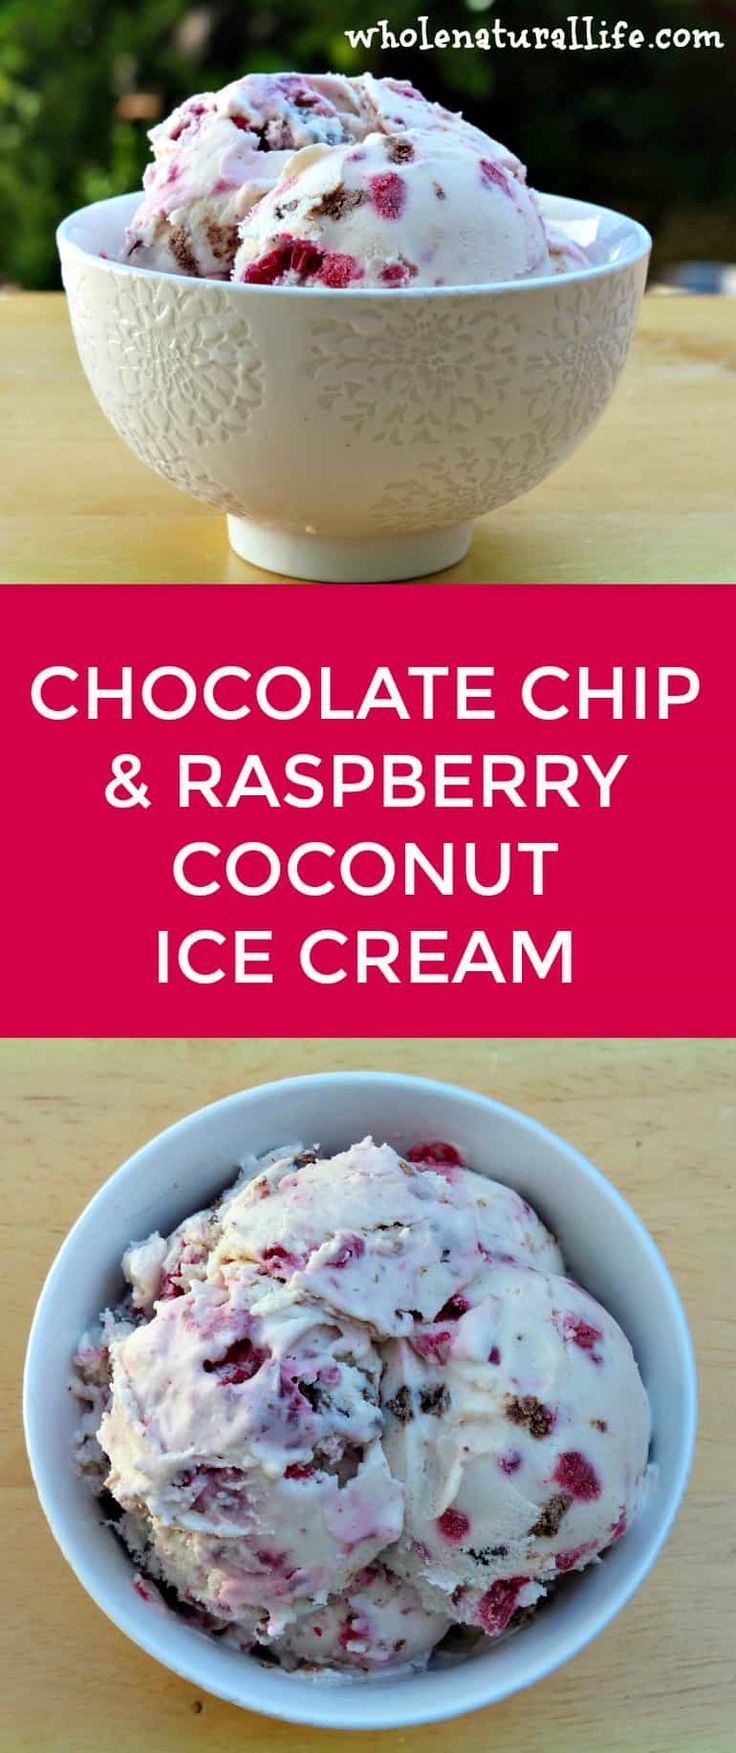 This chocolate chip and raspberry coconut ice cream is dairy-free, easy to make, and so delicious! Suitable for the GAPS and Paleo diets, too.